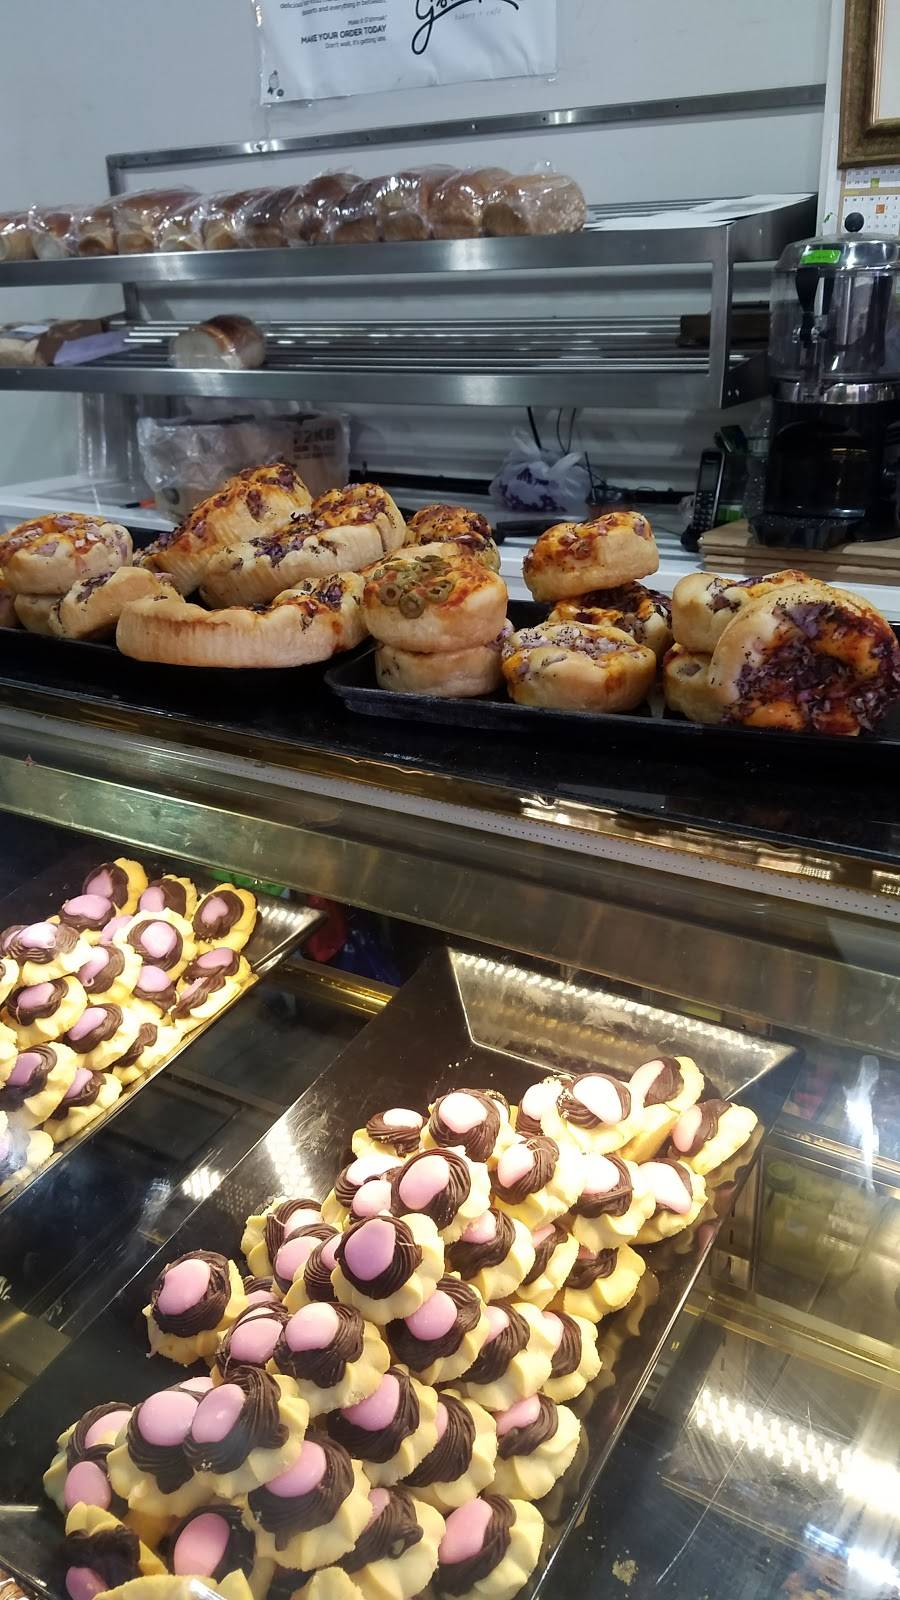 Gshmak Bakery and Cafe | bakery | 5418, 164 Wallabout St, Brooklyn, NY 11206, USA | 7185763190 OR +1 718-576-3190